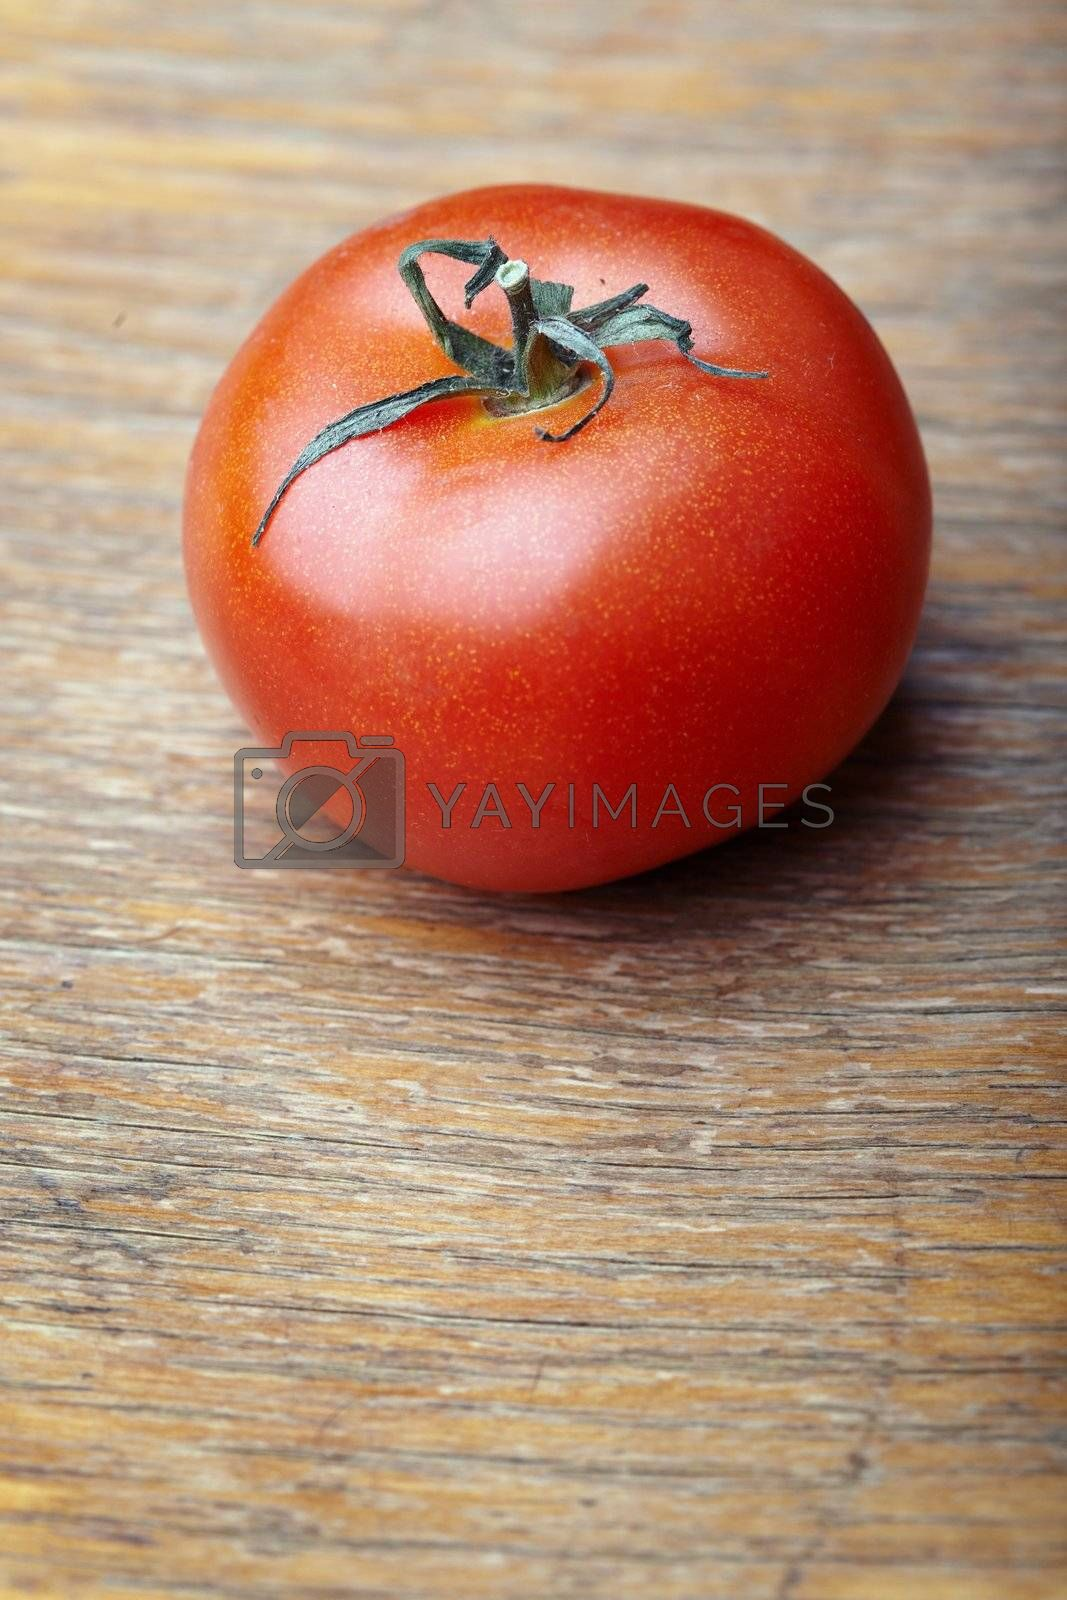 Close-up photo of the red tomato of the wooden background. Shallow depth of field added for natural view